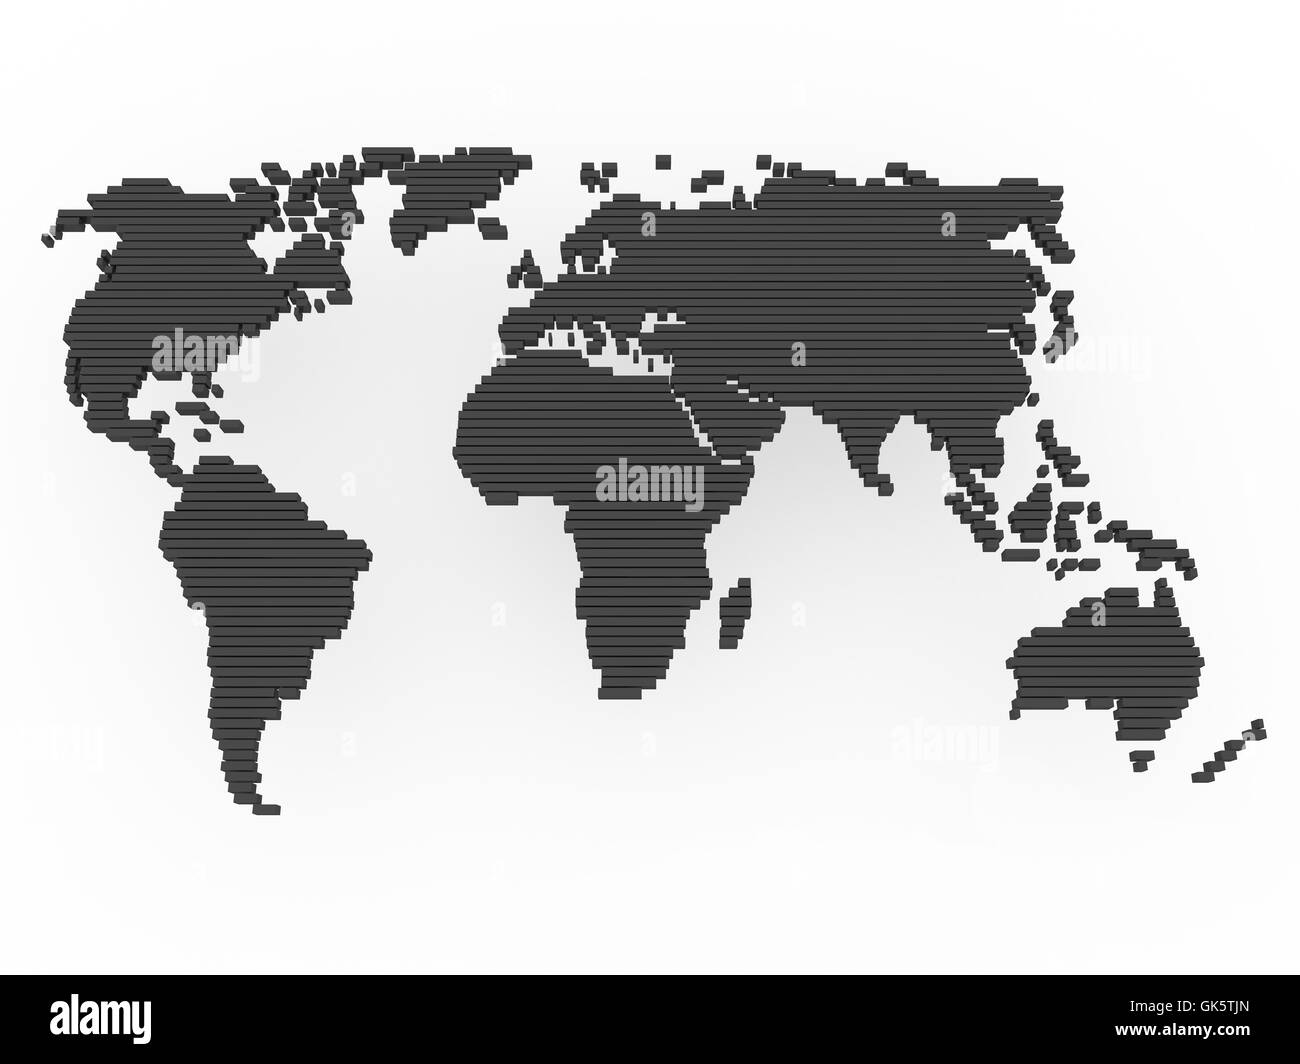 World map black grey stock photo 115069773 alamy world map black grey gumiabroncs Images